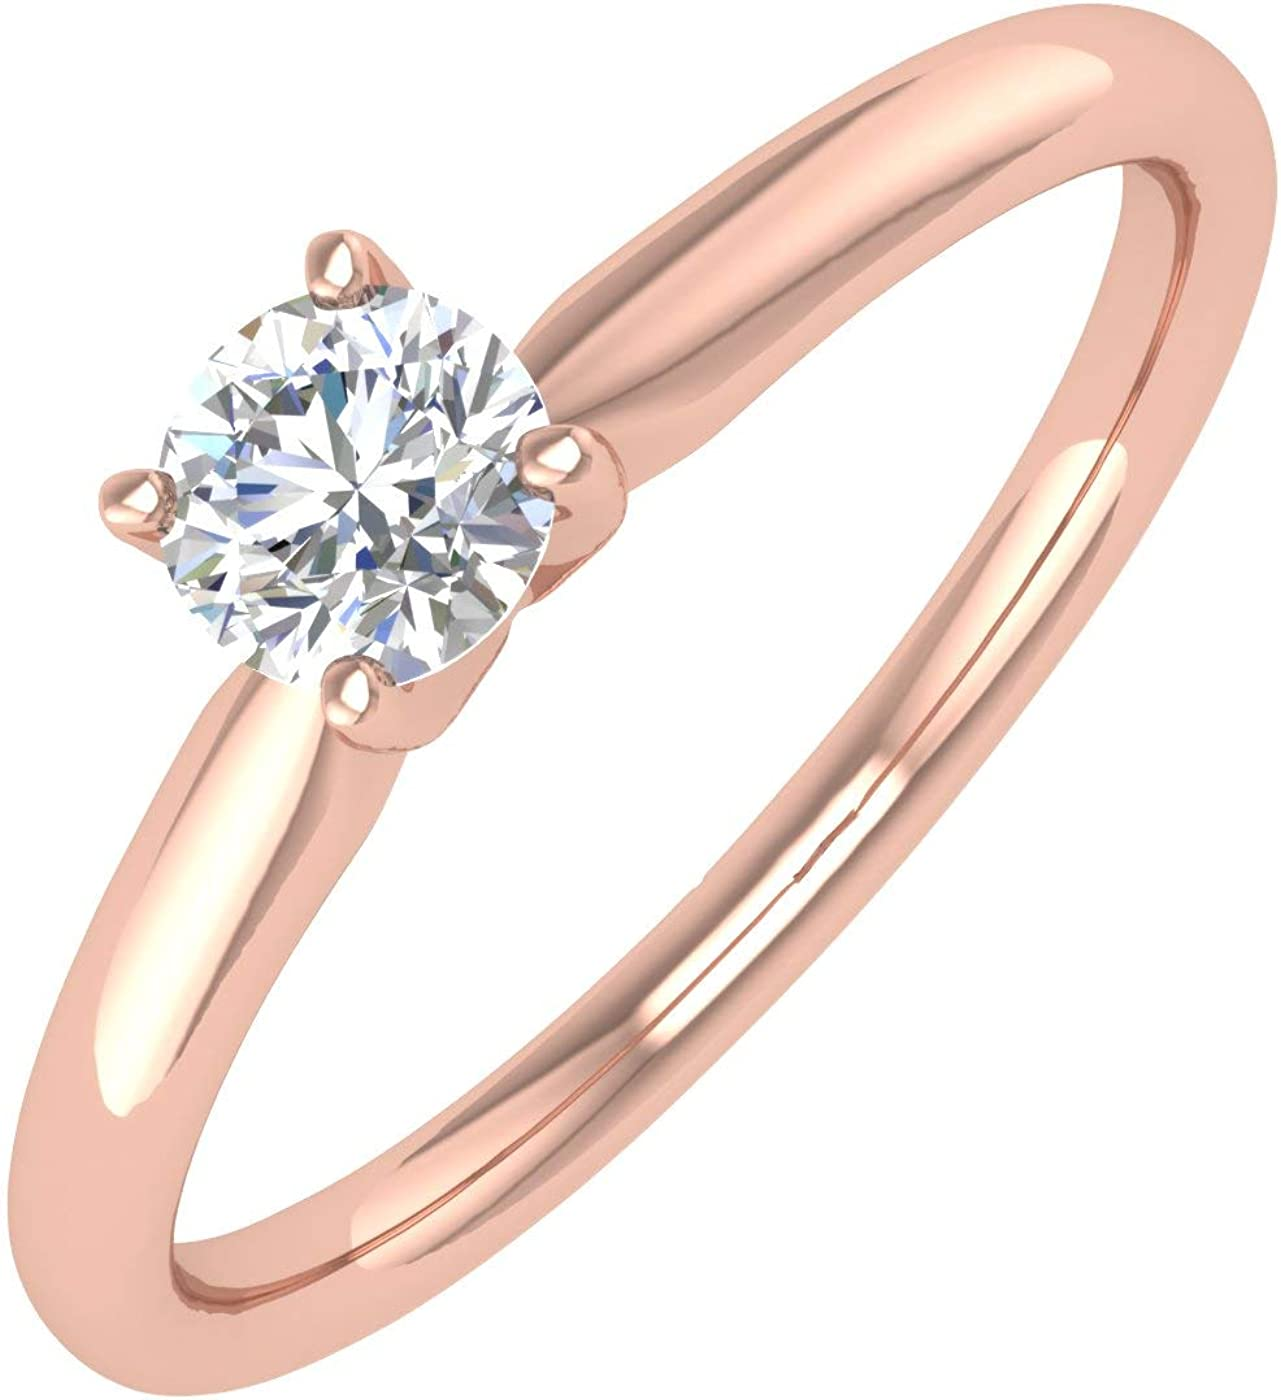 1 5 Carat 4-Prong Finally resale start Set Diamond Engagement New color in Solitaire Ring Band